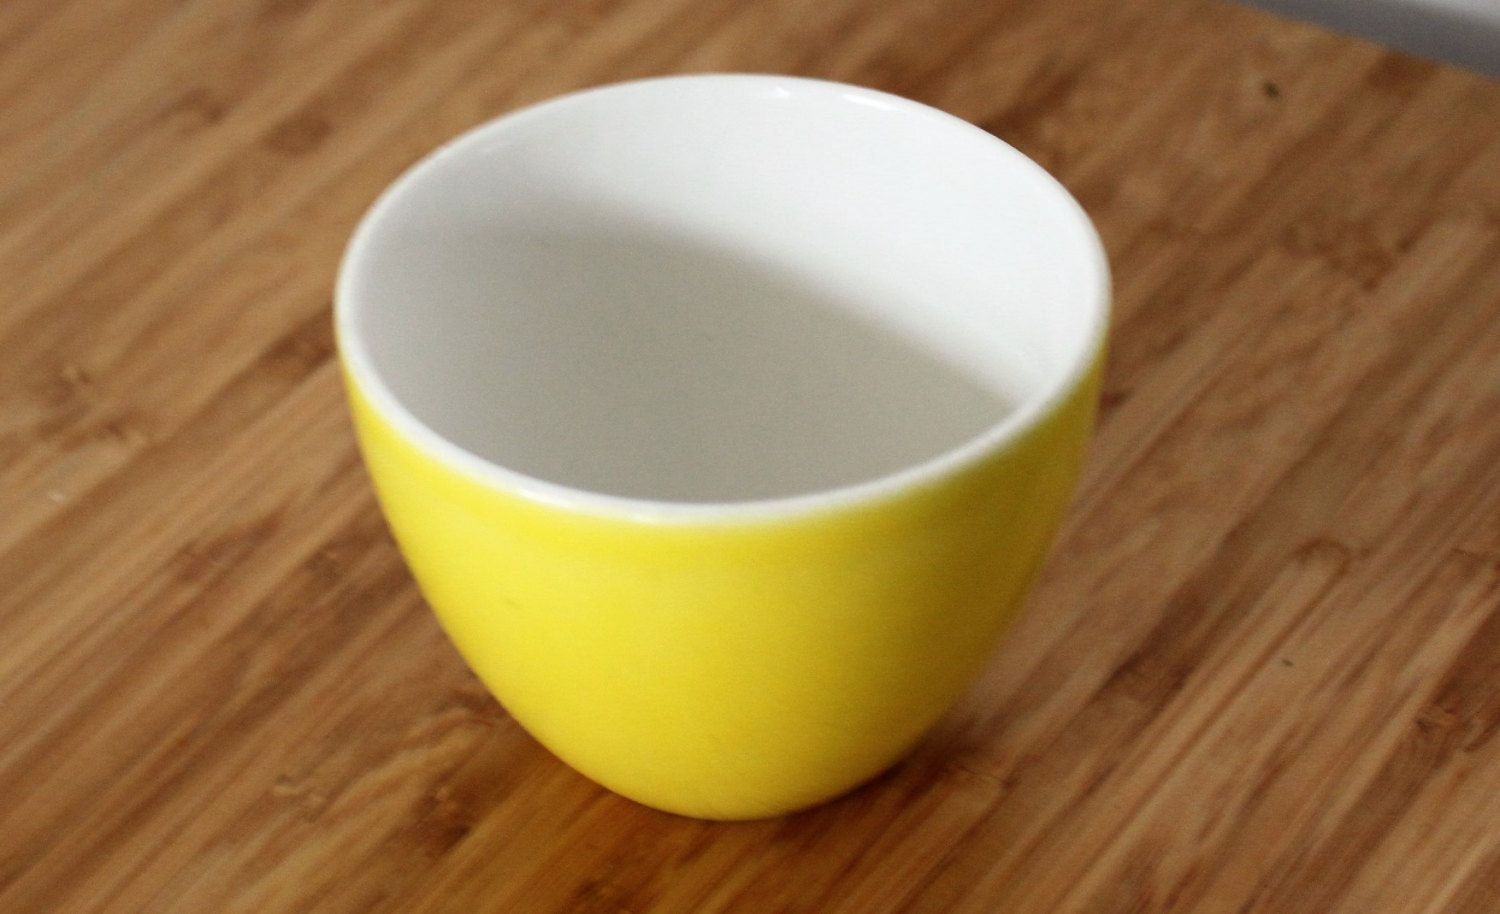 Yellow sugar bowls with lids - Poole Pottery Sunshine Yellow And Polar White Sugar Bowl C1960s Collectable Ceramic By Atticbazaar On Etsy